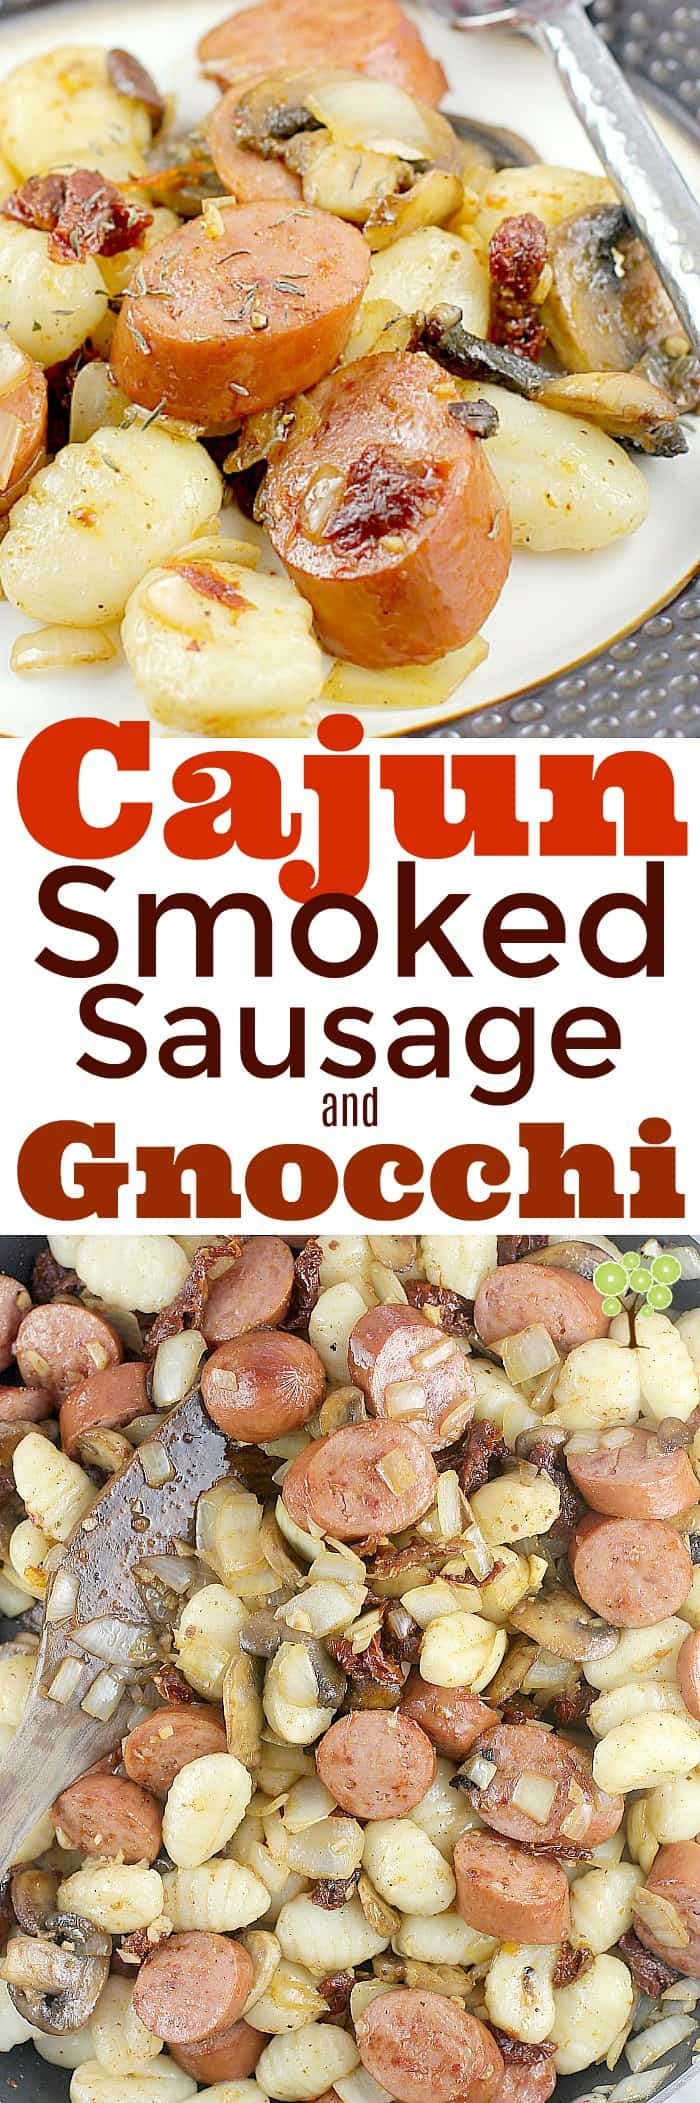 Cajun Smoked Sausage and Gnocchi (Ready in 20 minutes!) #EverydayEckrich #ad